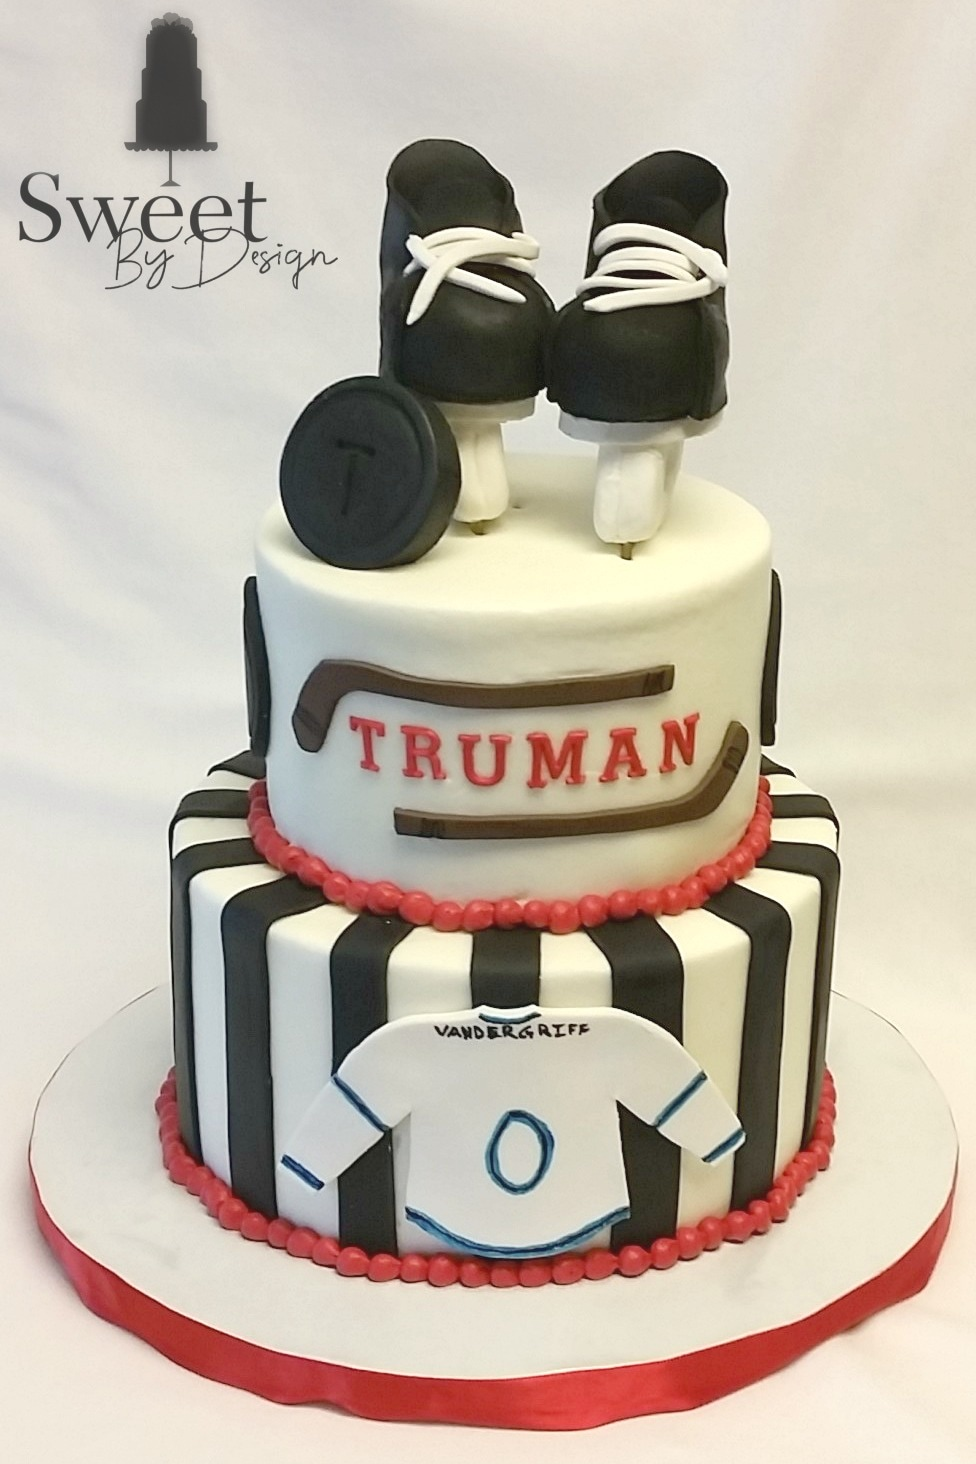 Hockey baby shower cake by Sweet By Design in Melissa, TX